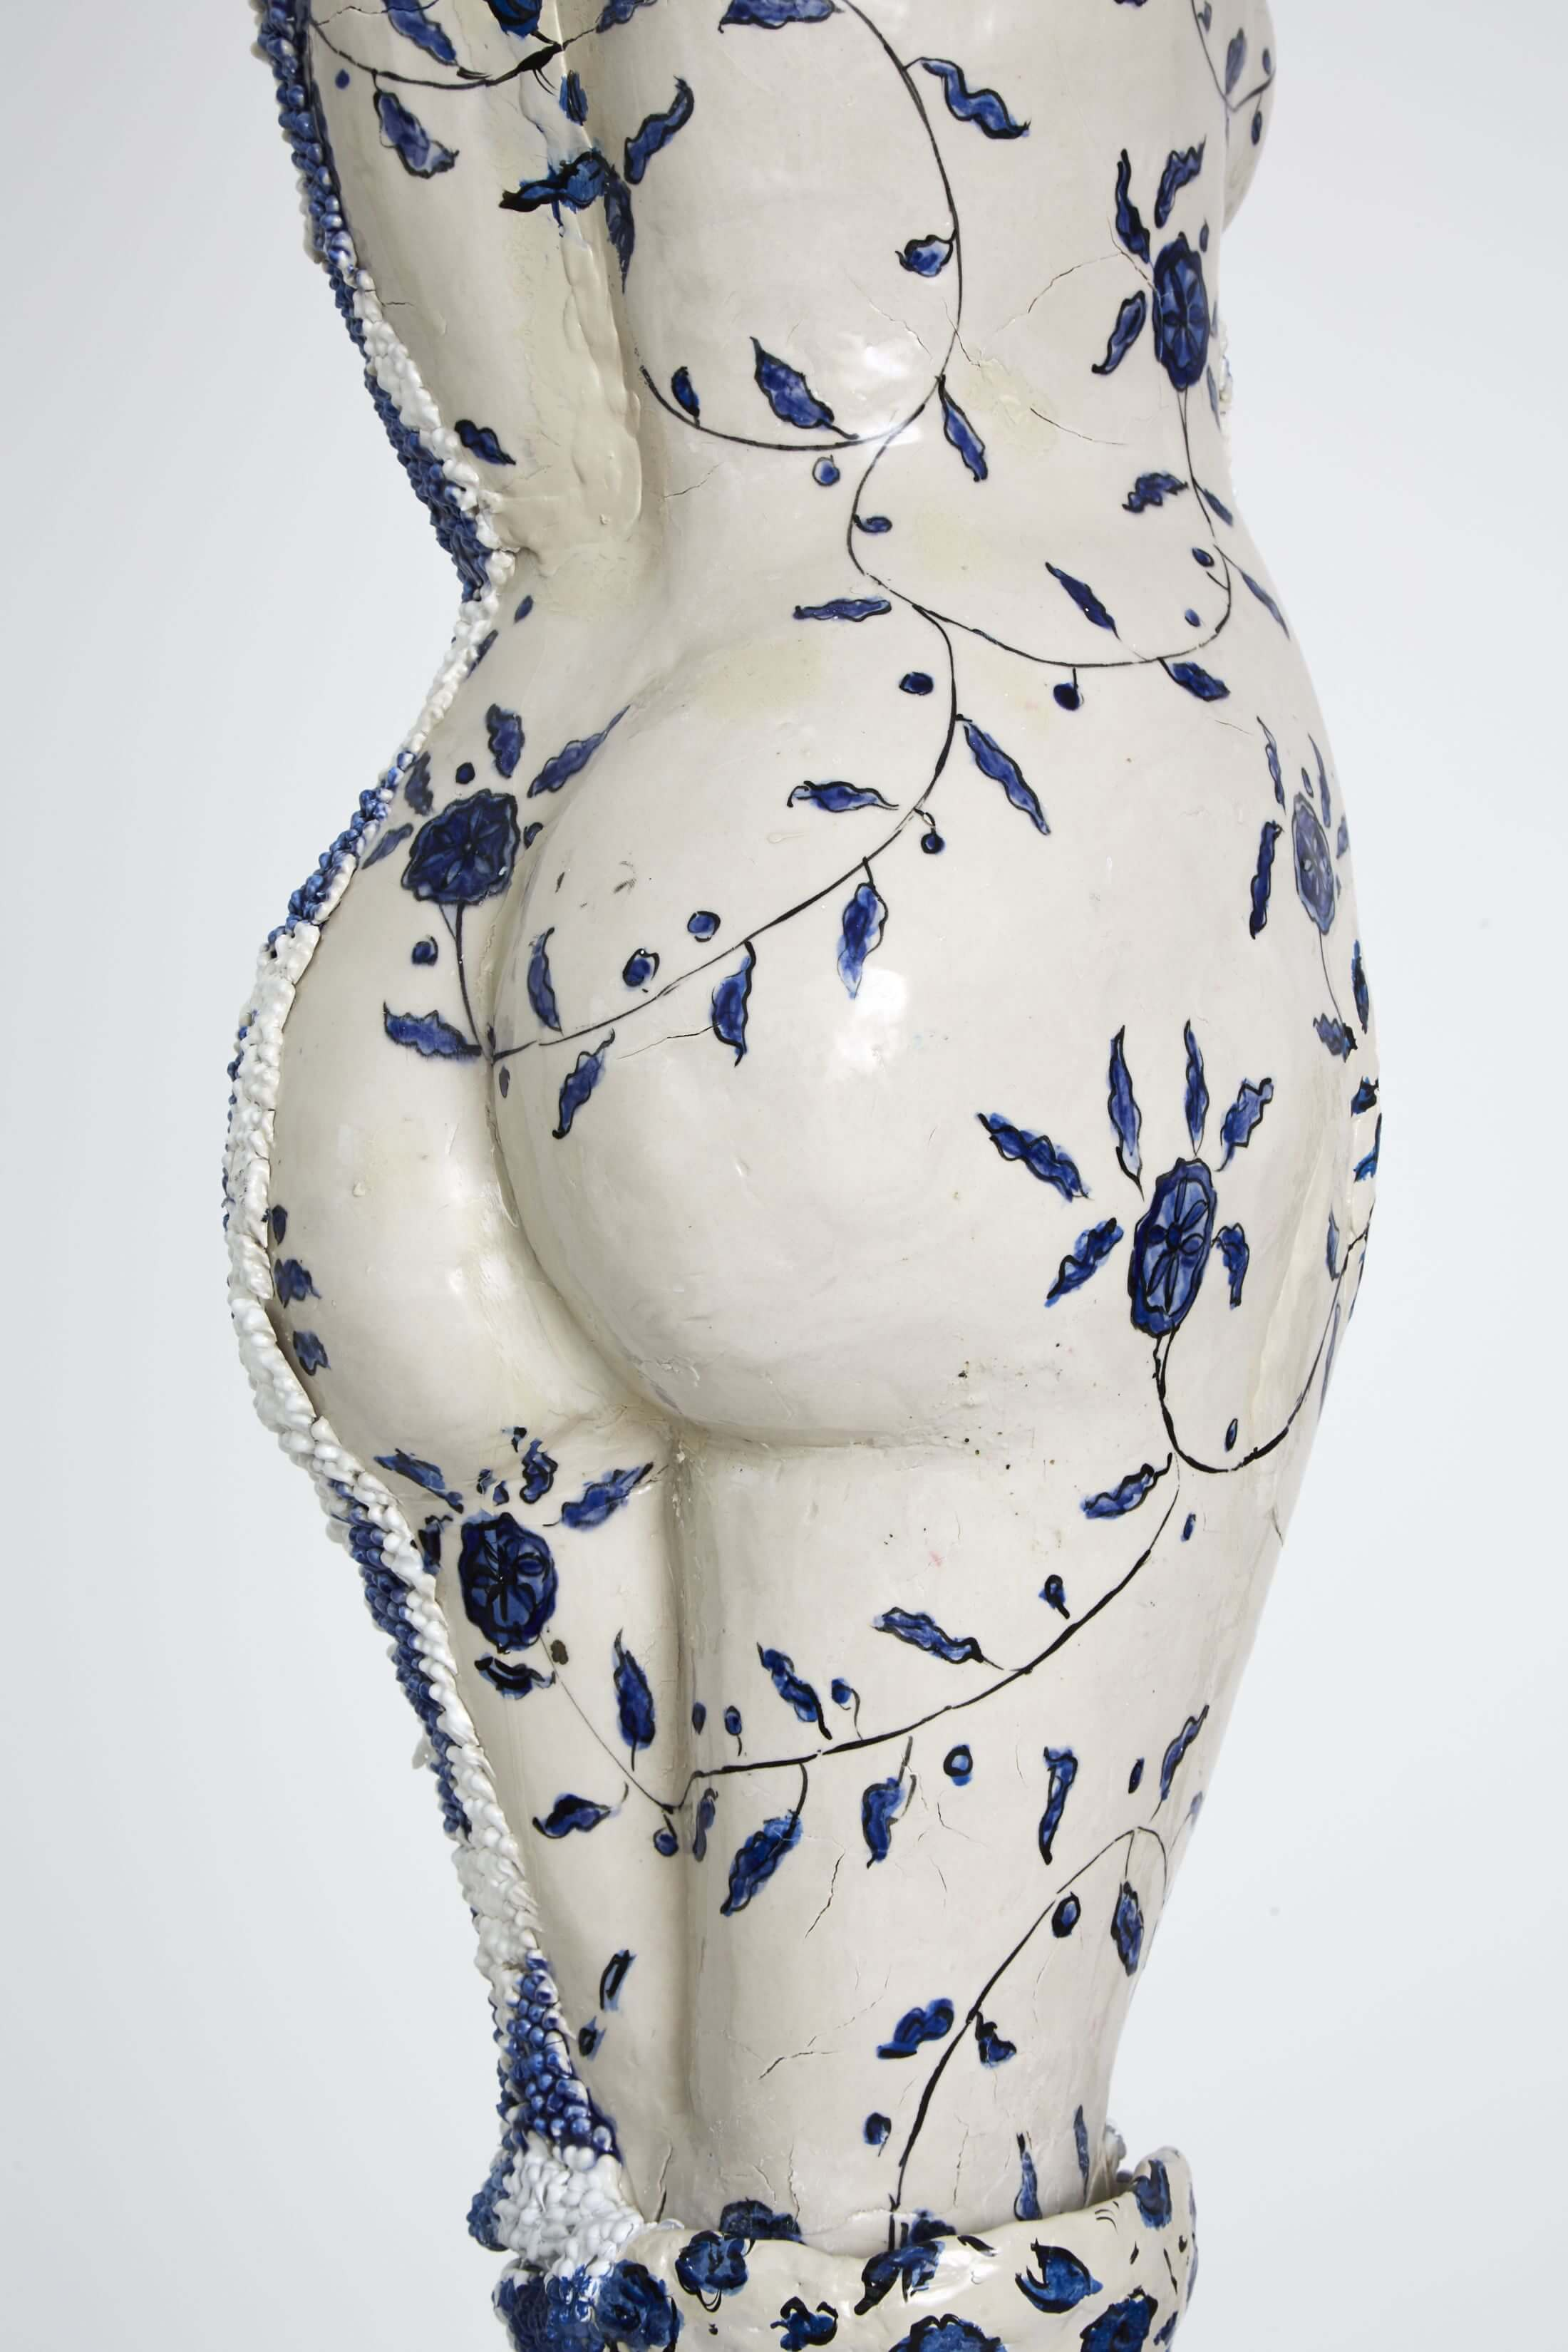 majestic large-scale porcelain sculptures exploring femininity 5